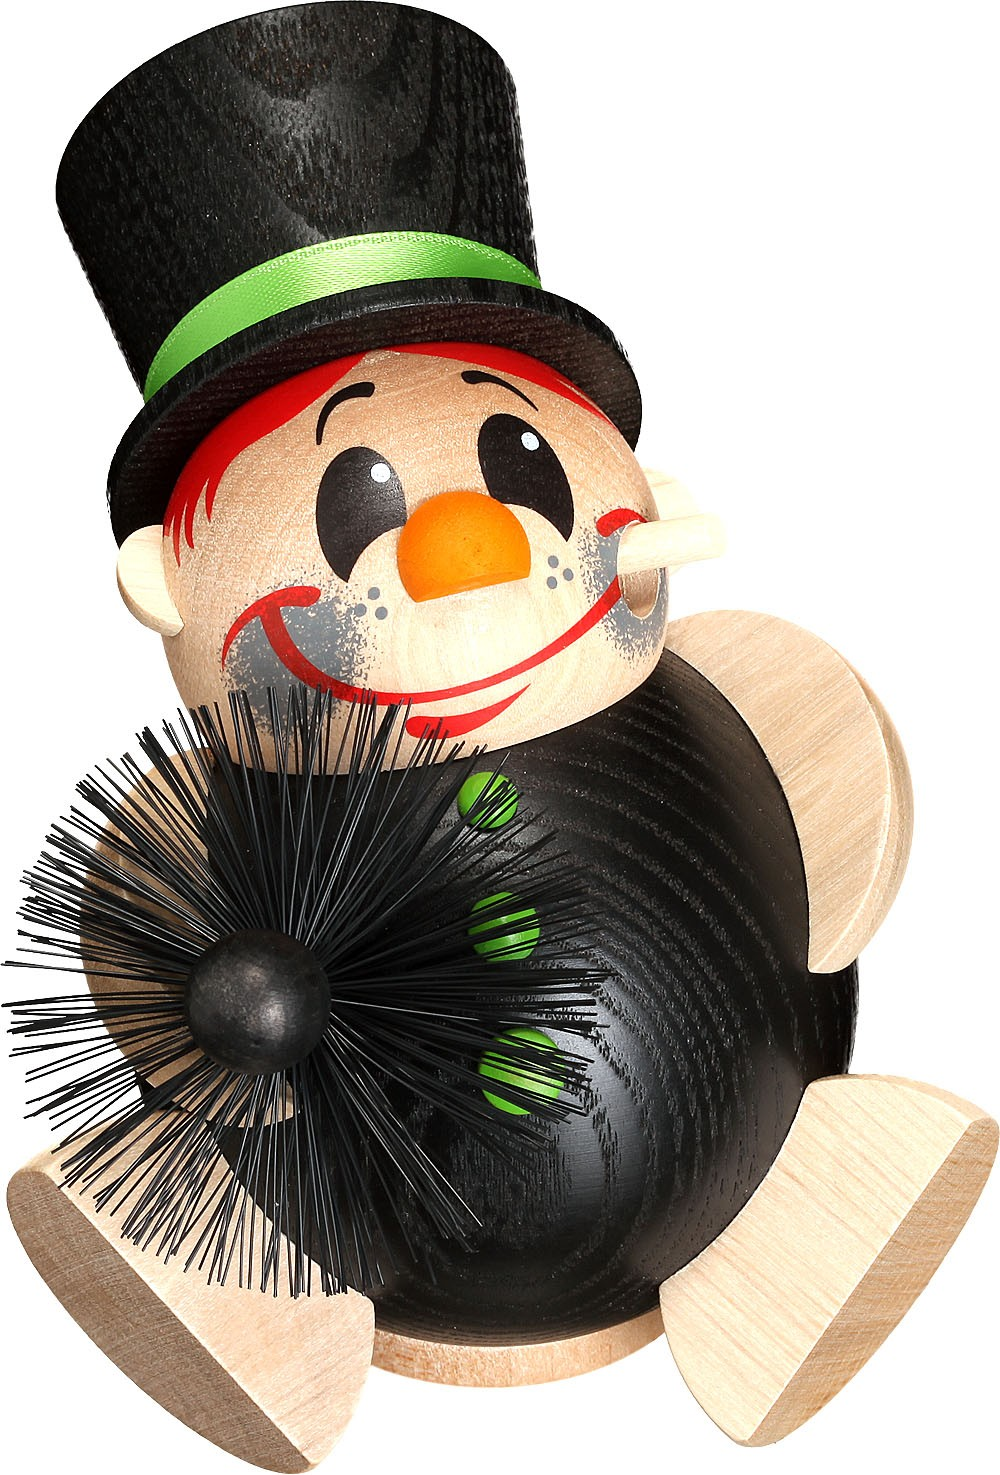 spheric incense smokers, professions - chimney sweep with brush